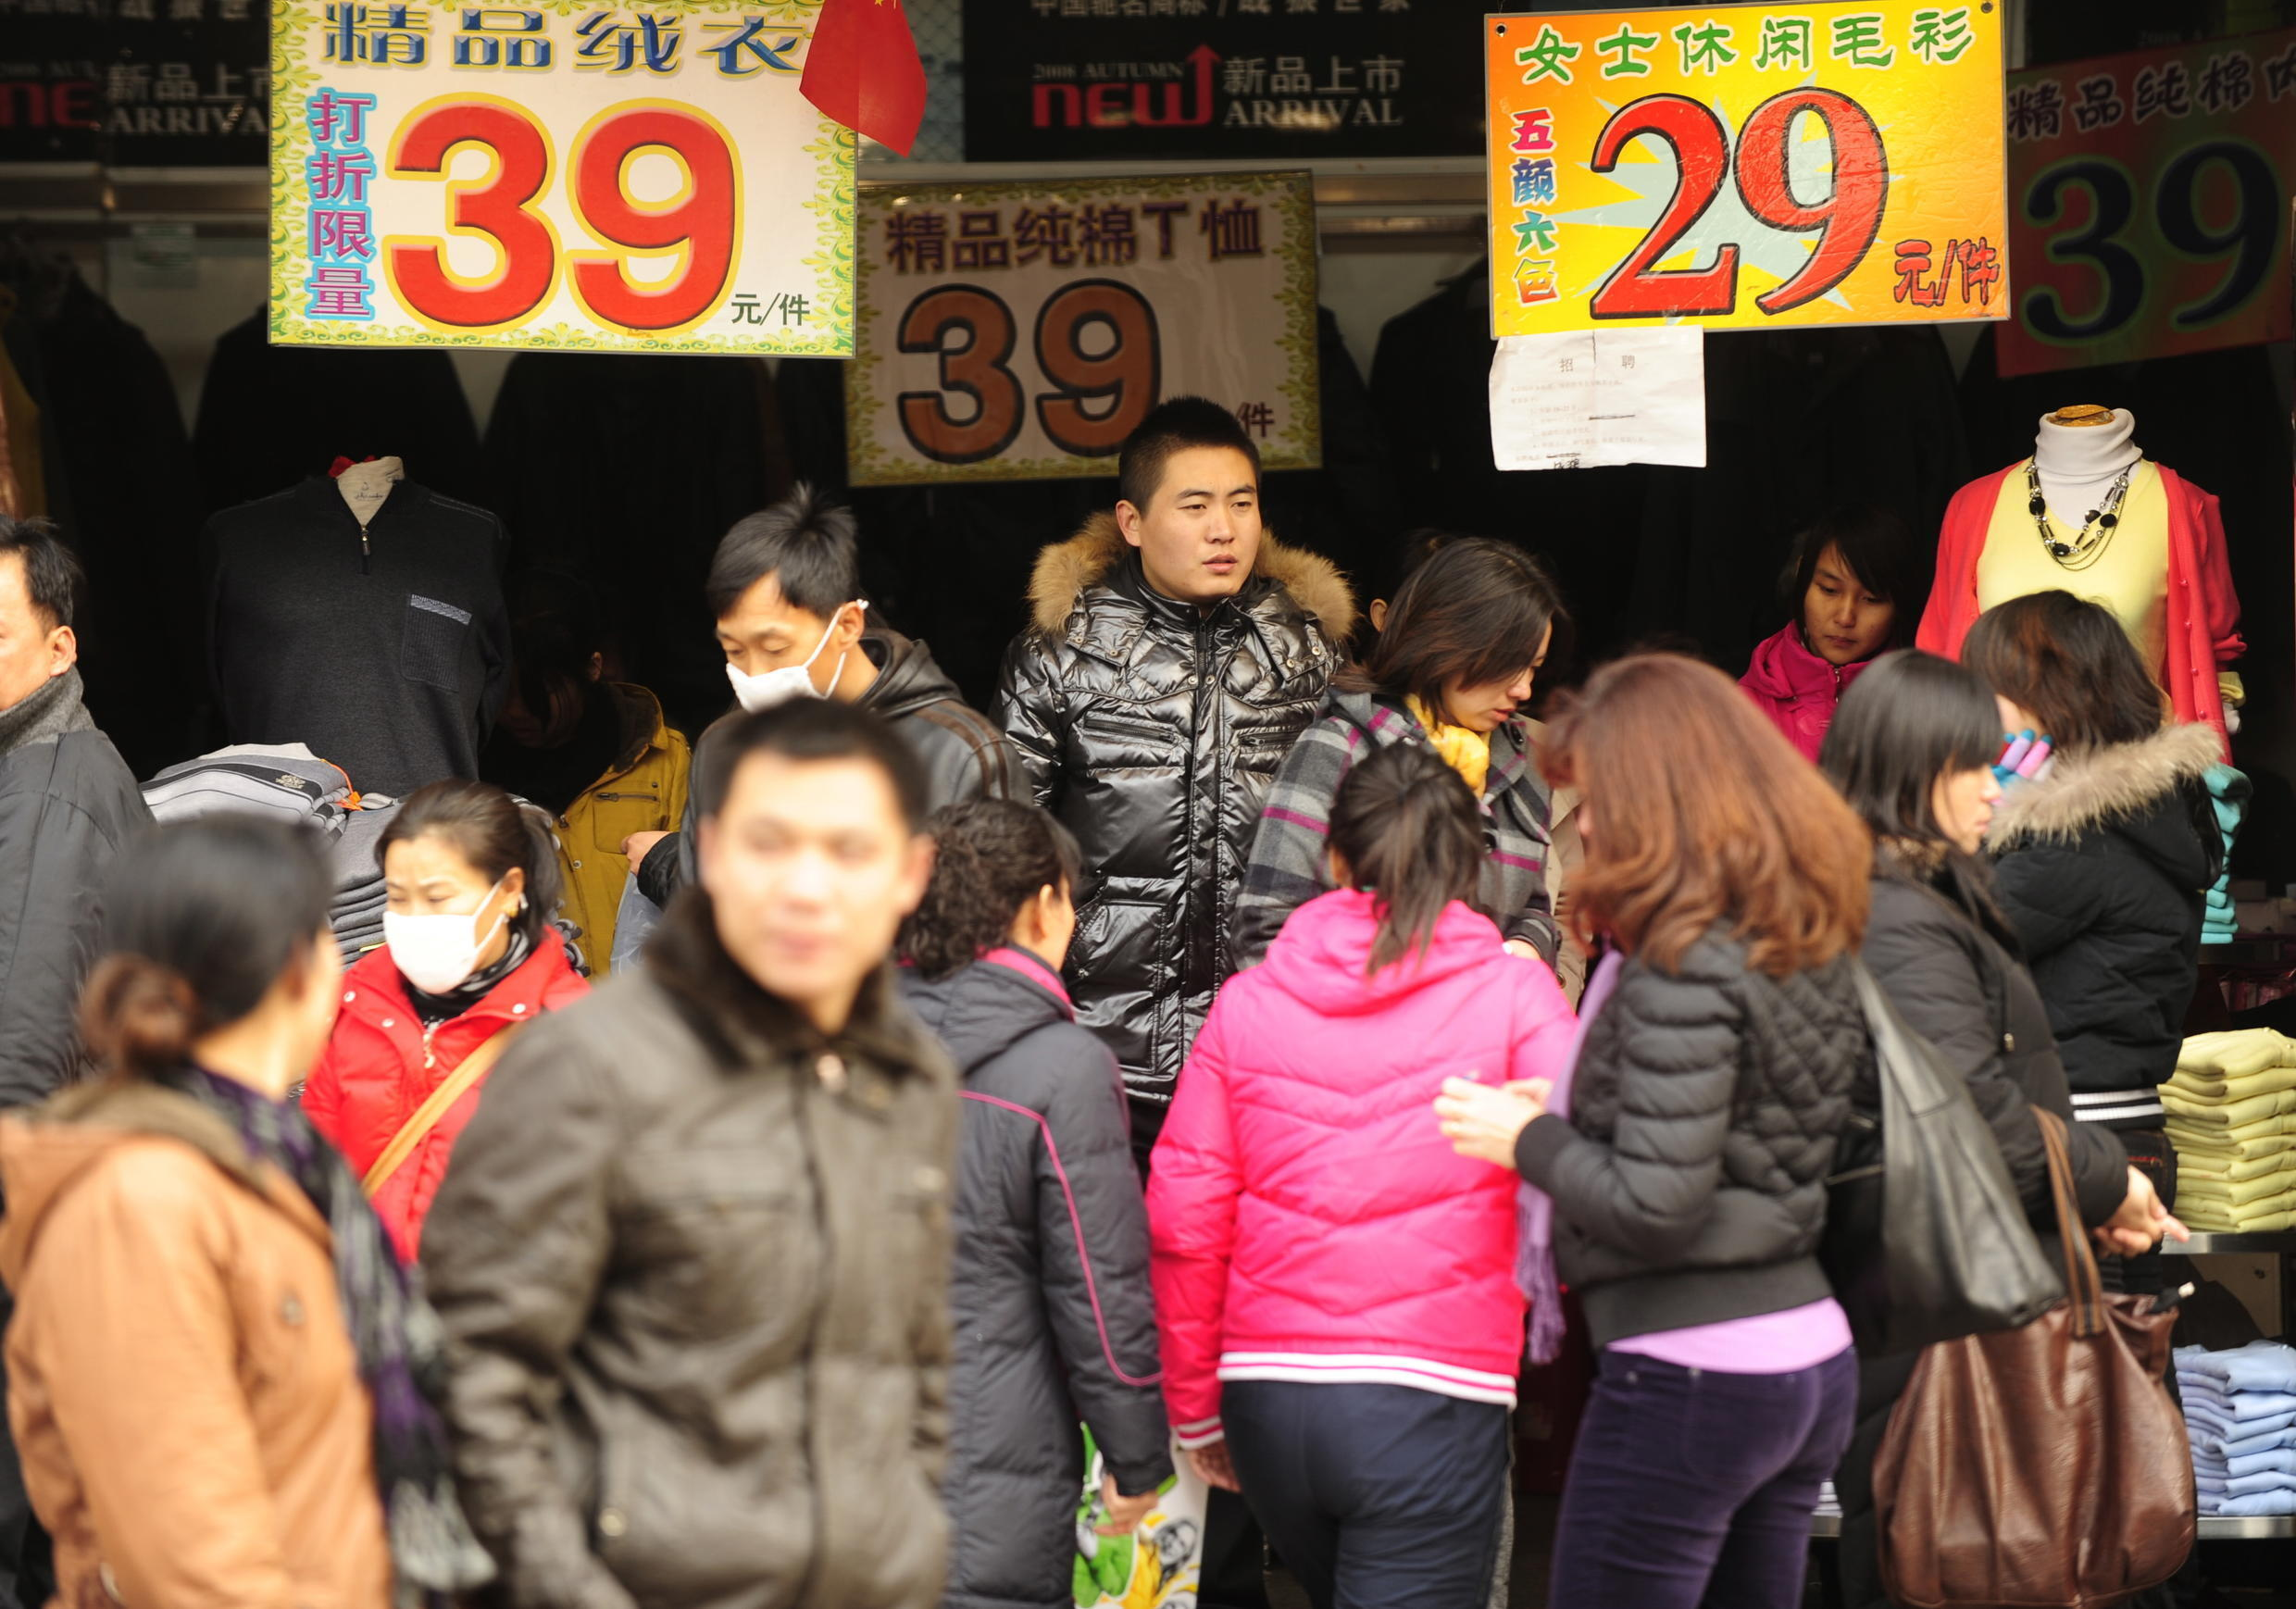 The Chinese economy expanded at a record pace in the first quarter, helped by a strong surge in consumer activity in the vast nation